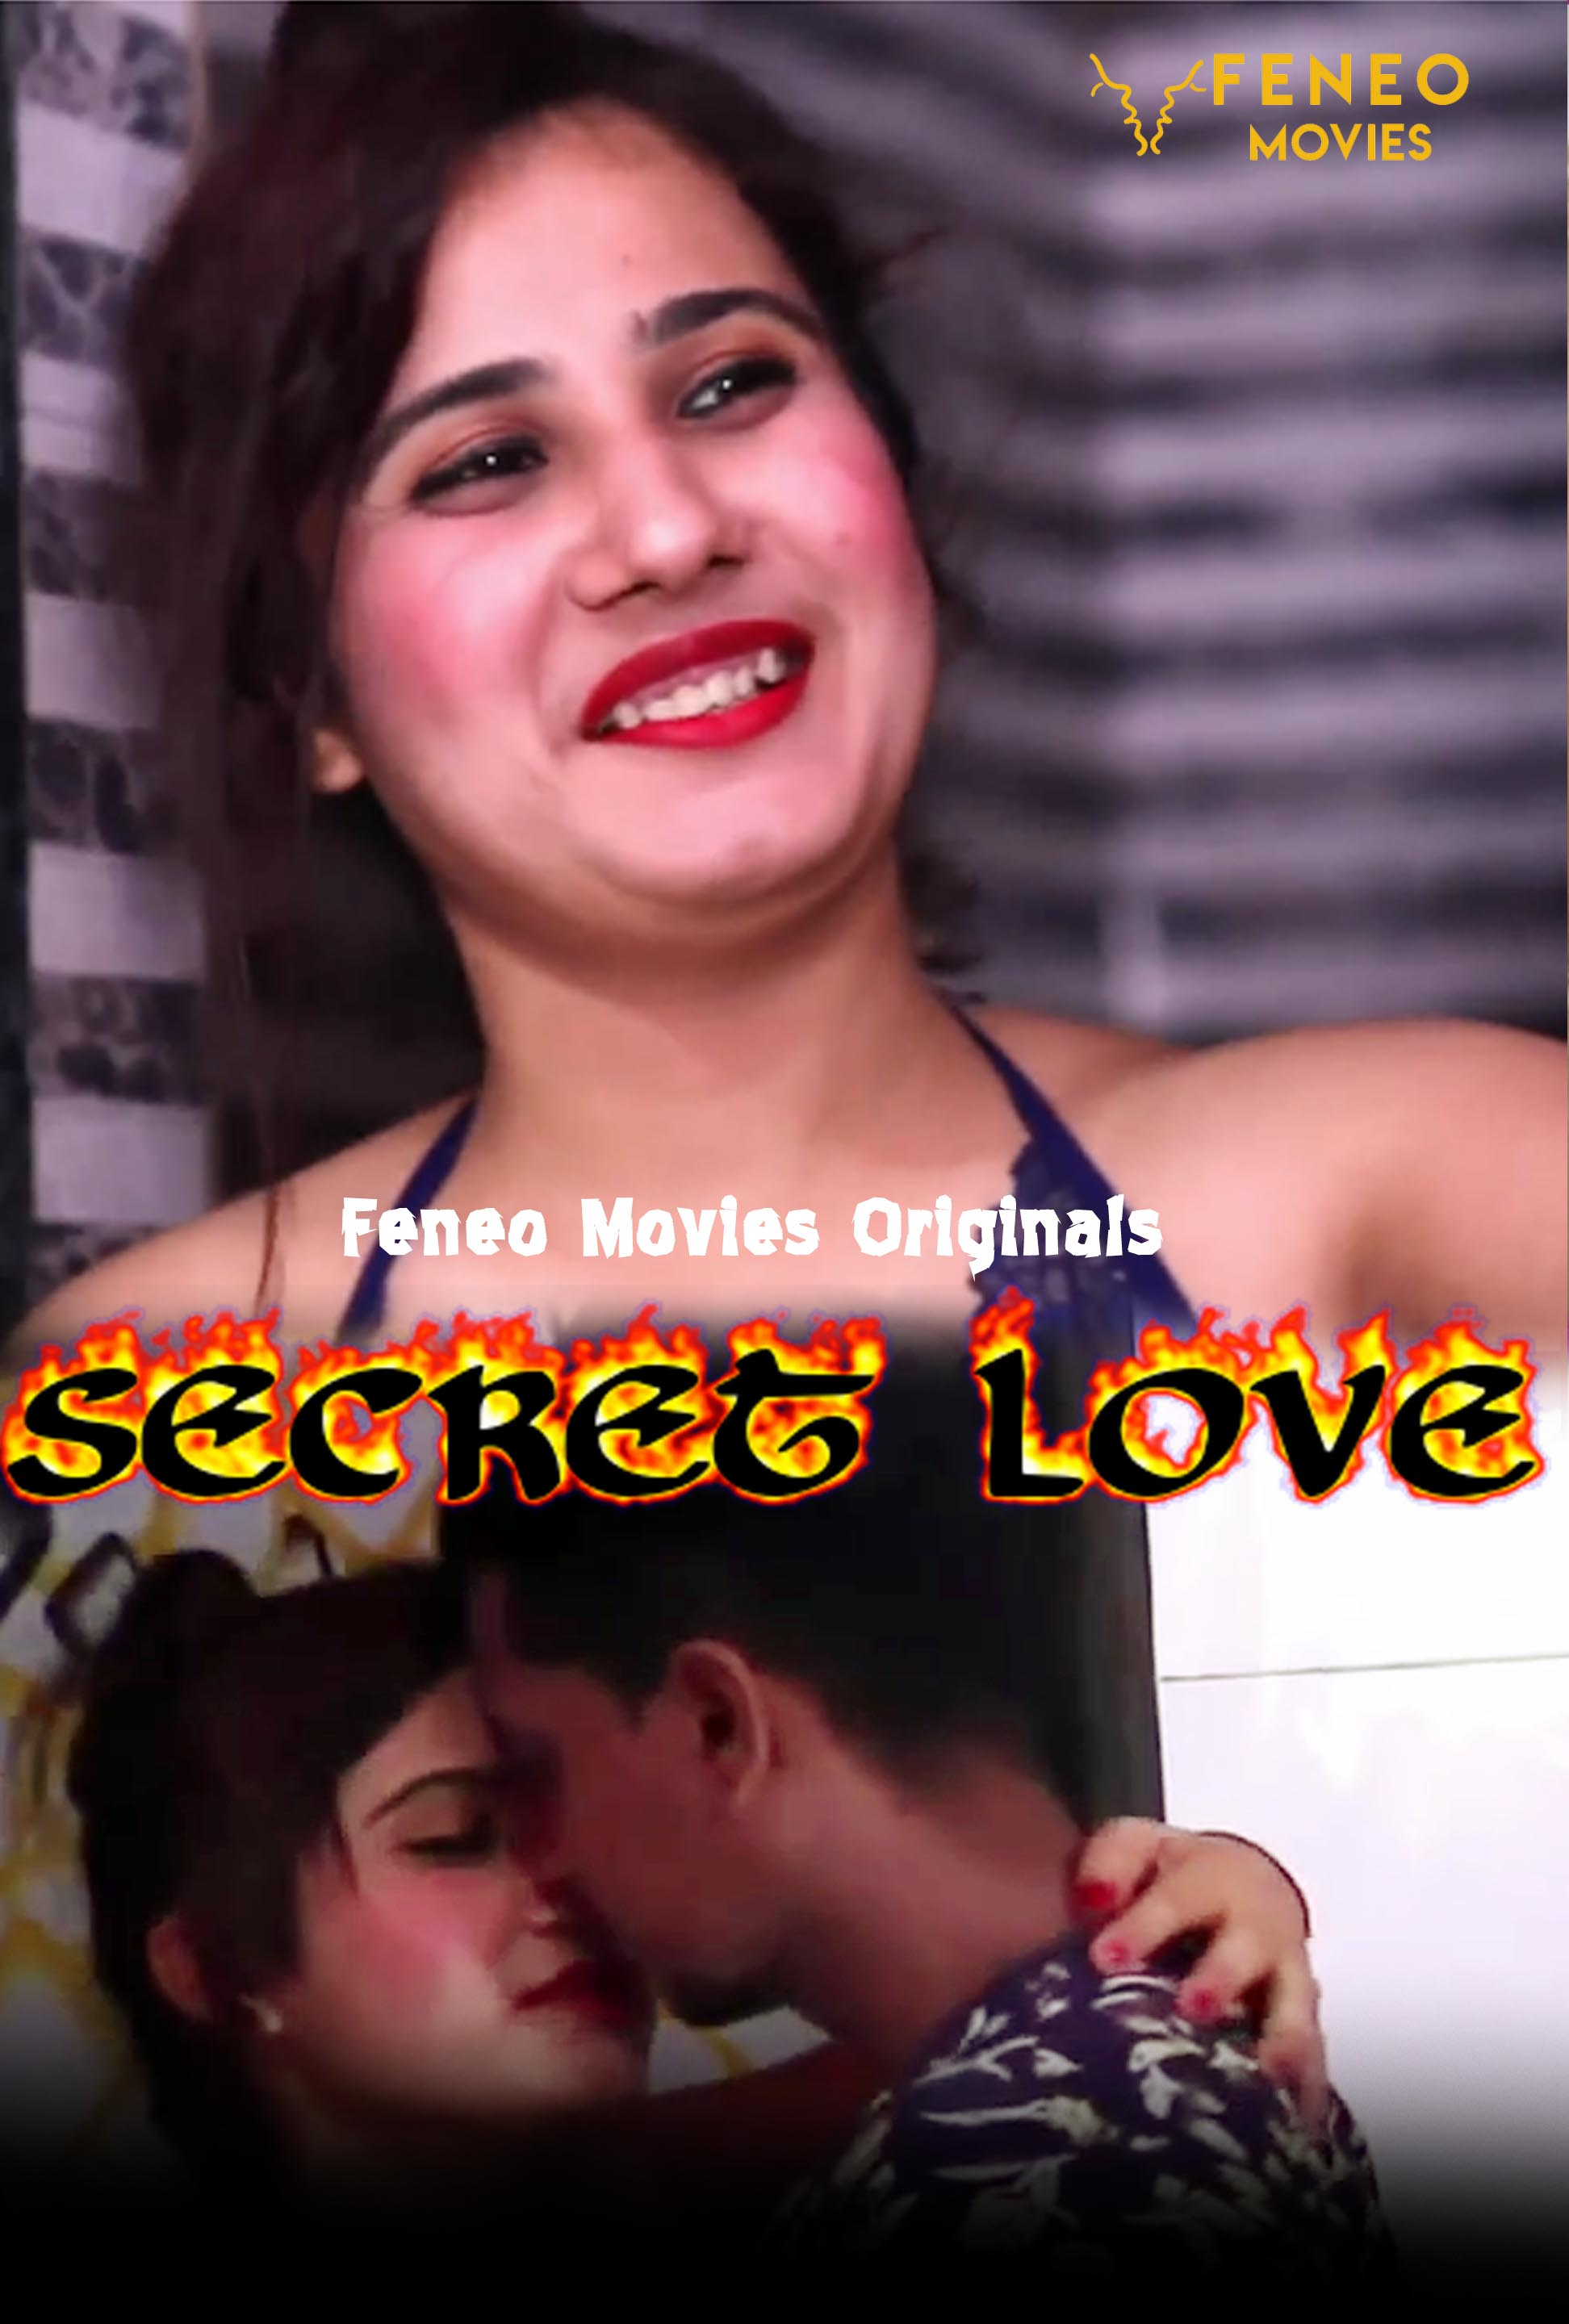 Secret Love 2020 S01 E02 Hindi Feneomovies Original Web Series 720p HDRip 210MB Download